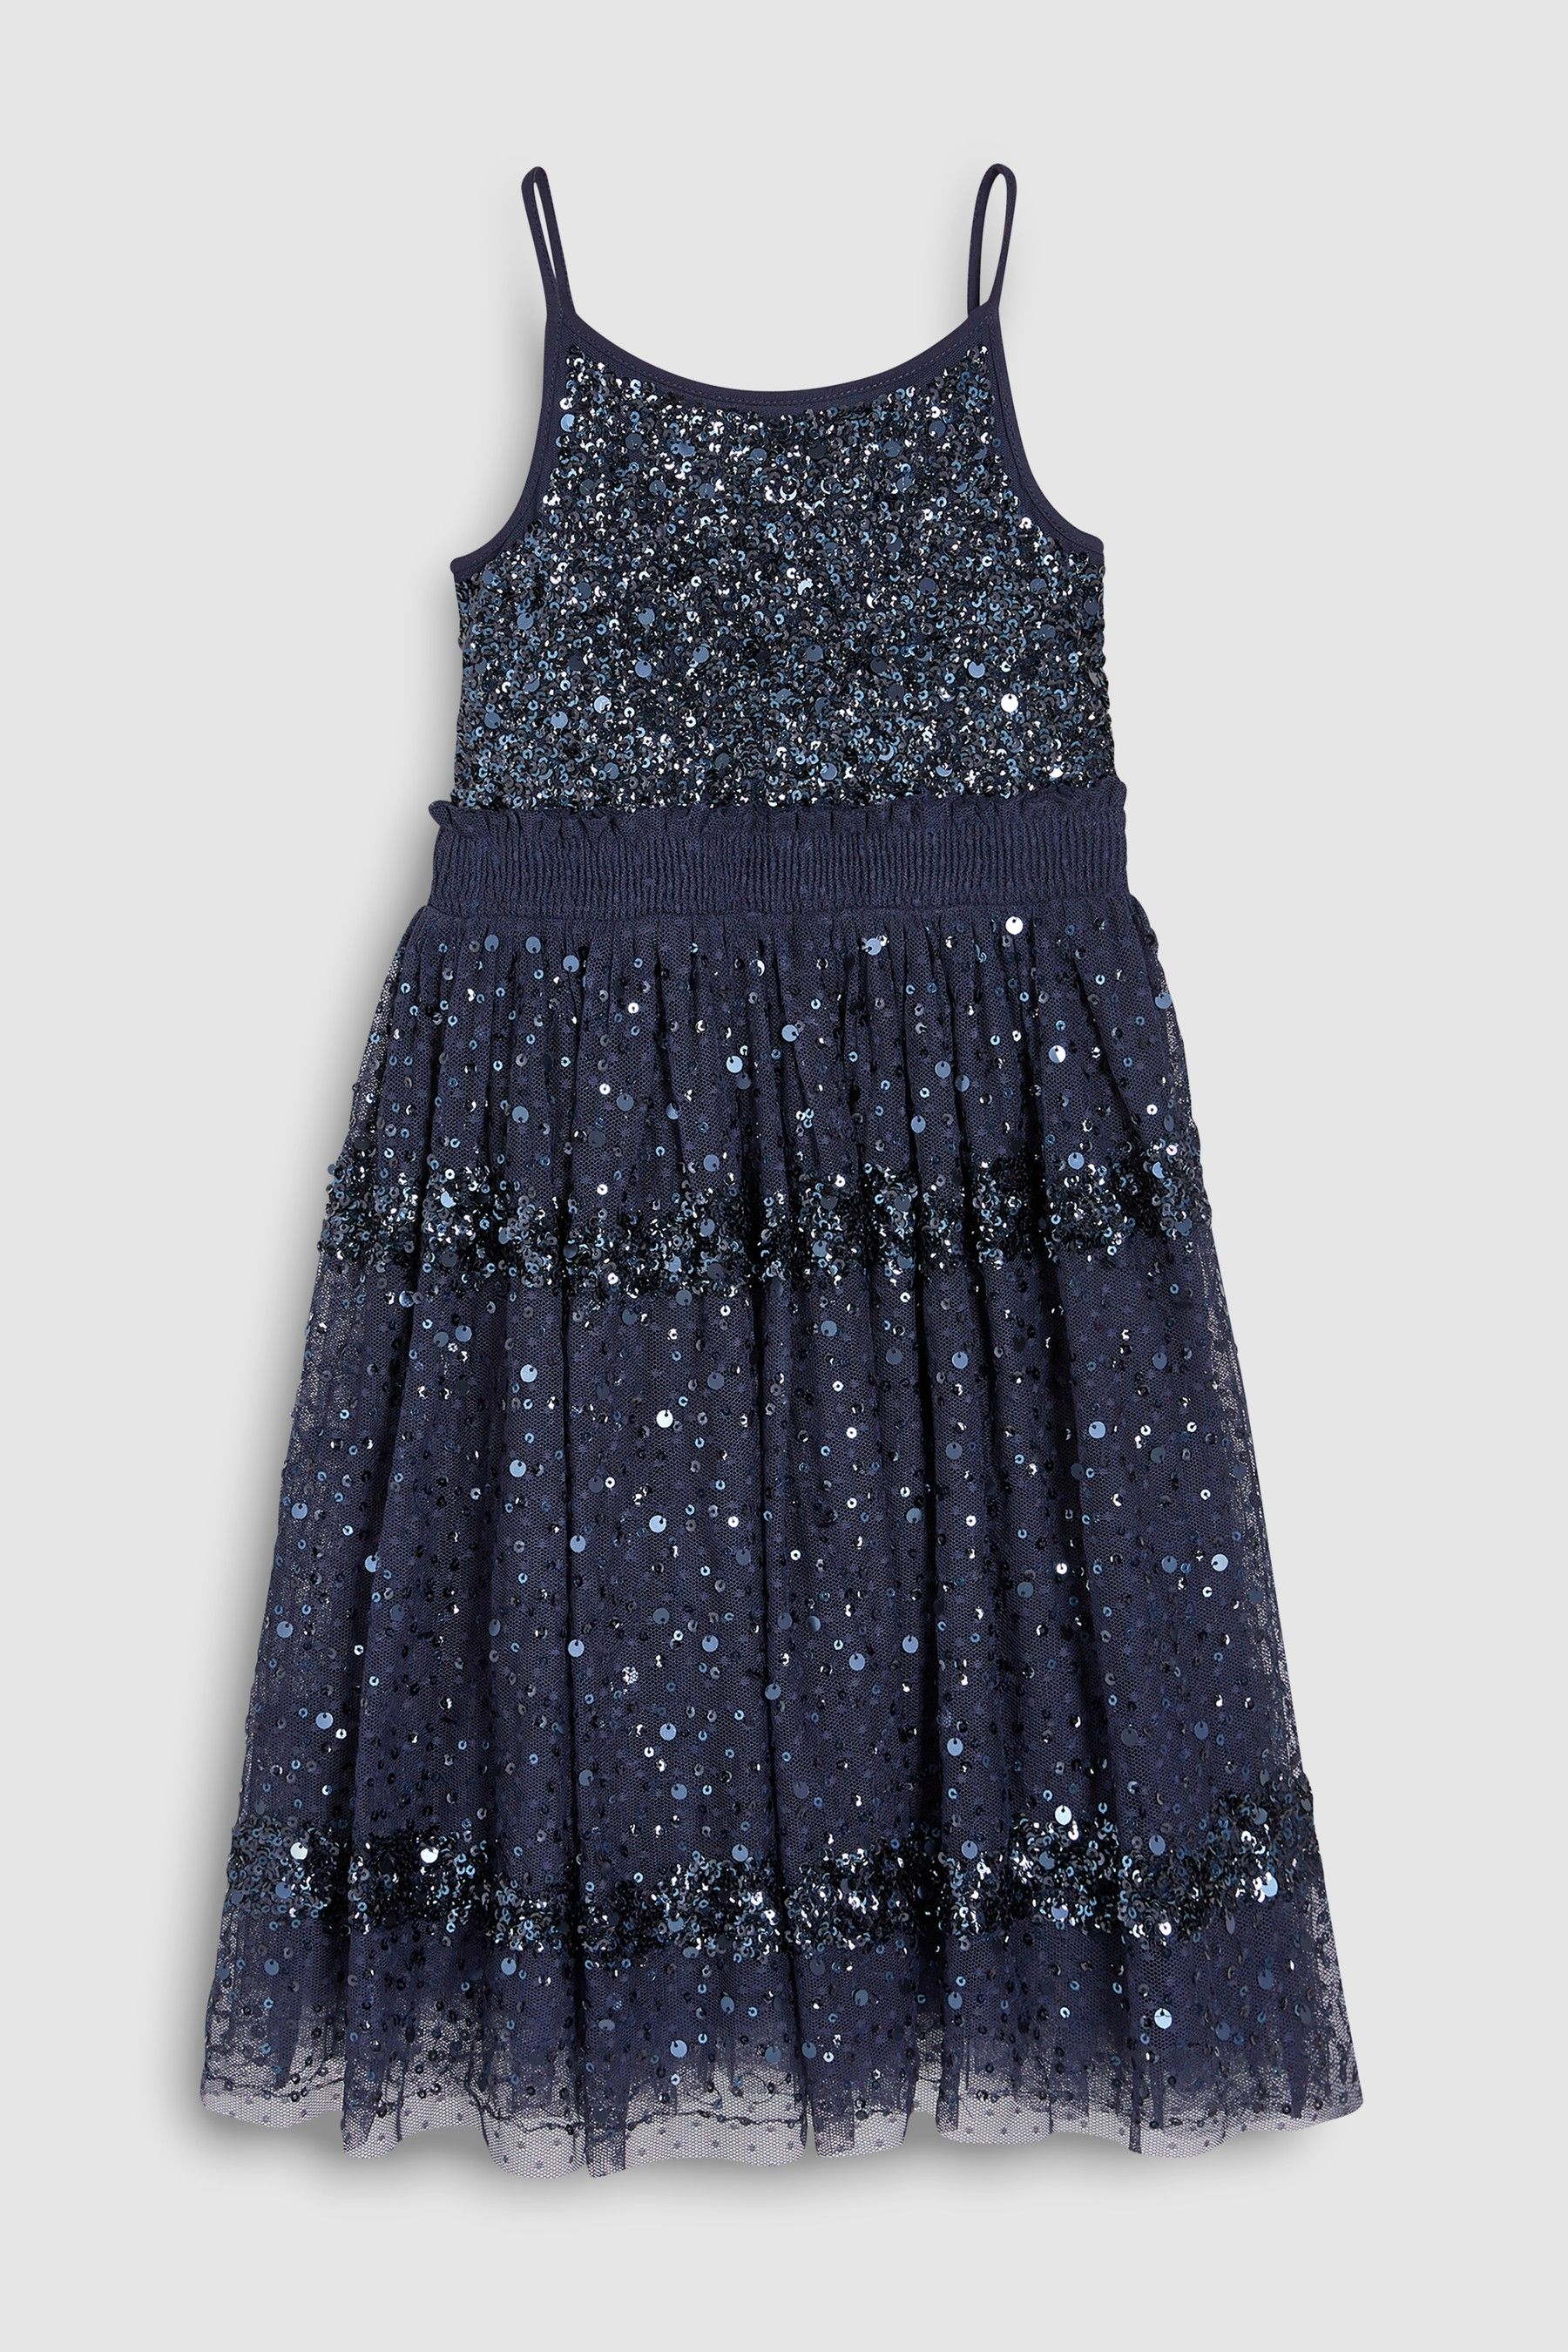 982cb00281ca Girls Next Navy Sequin Dress (3-16yrs) - Blue